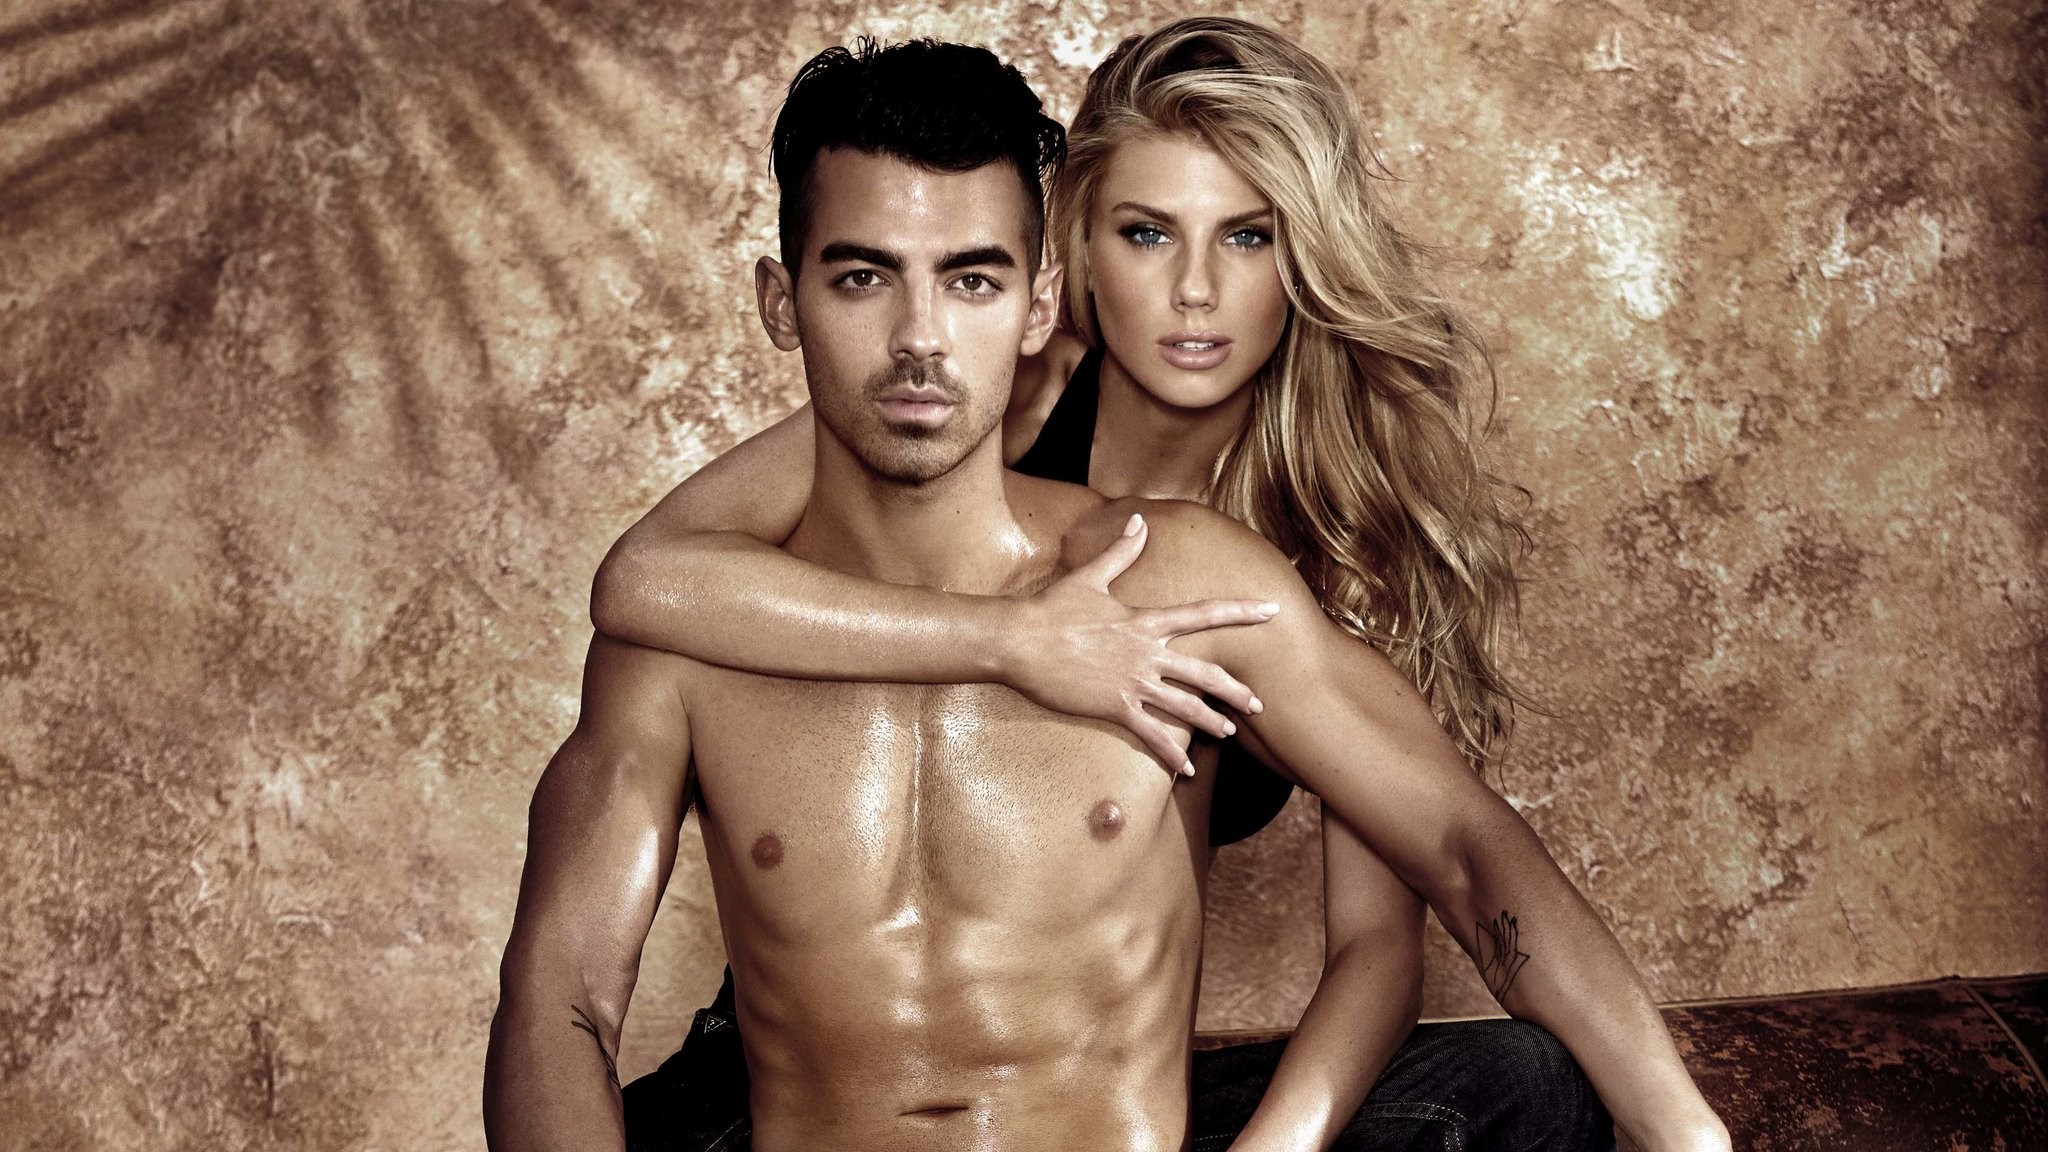 Joe Jonas and Charlotte McKinney strip down, grease up in Guess underwear ads https://t.co/z3cvV4QEVV https://t.co/KnezRBlv7J